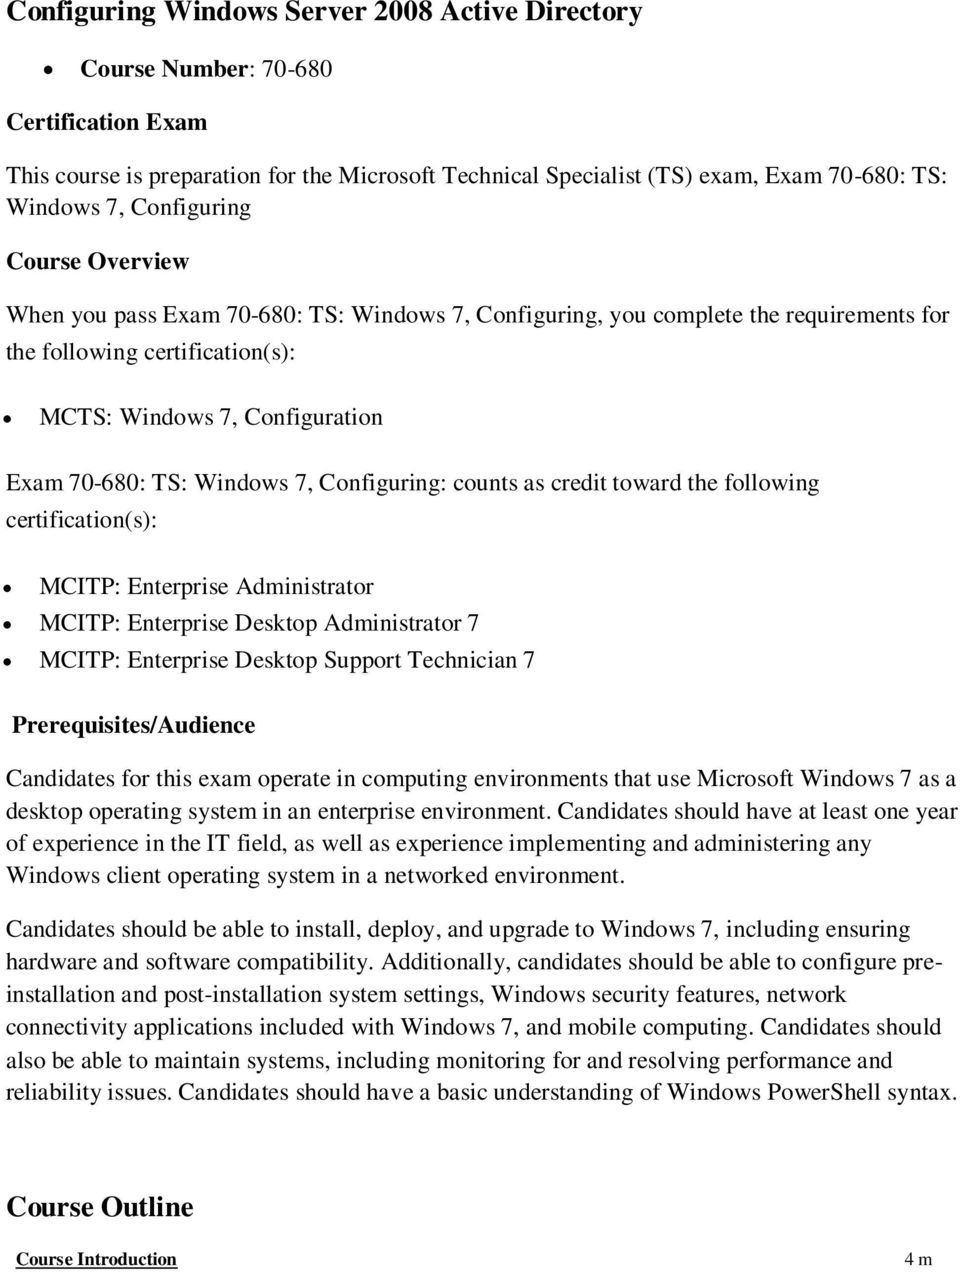 Windows 7, Configuring: counts as credit toward the following certification(s): MCITP: Enterprise Administrator MCITP: Enterprise Desktop Administrator 7 MCITP: Enterprise Desktop Support Technician